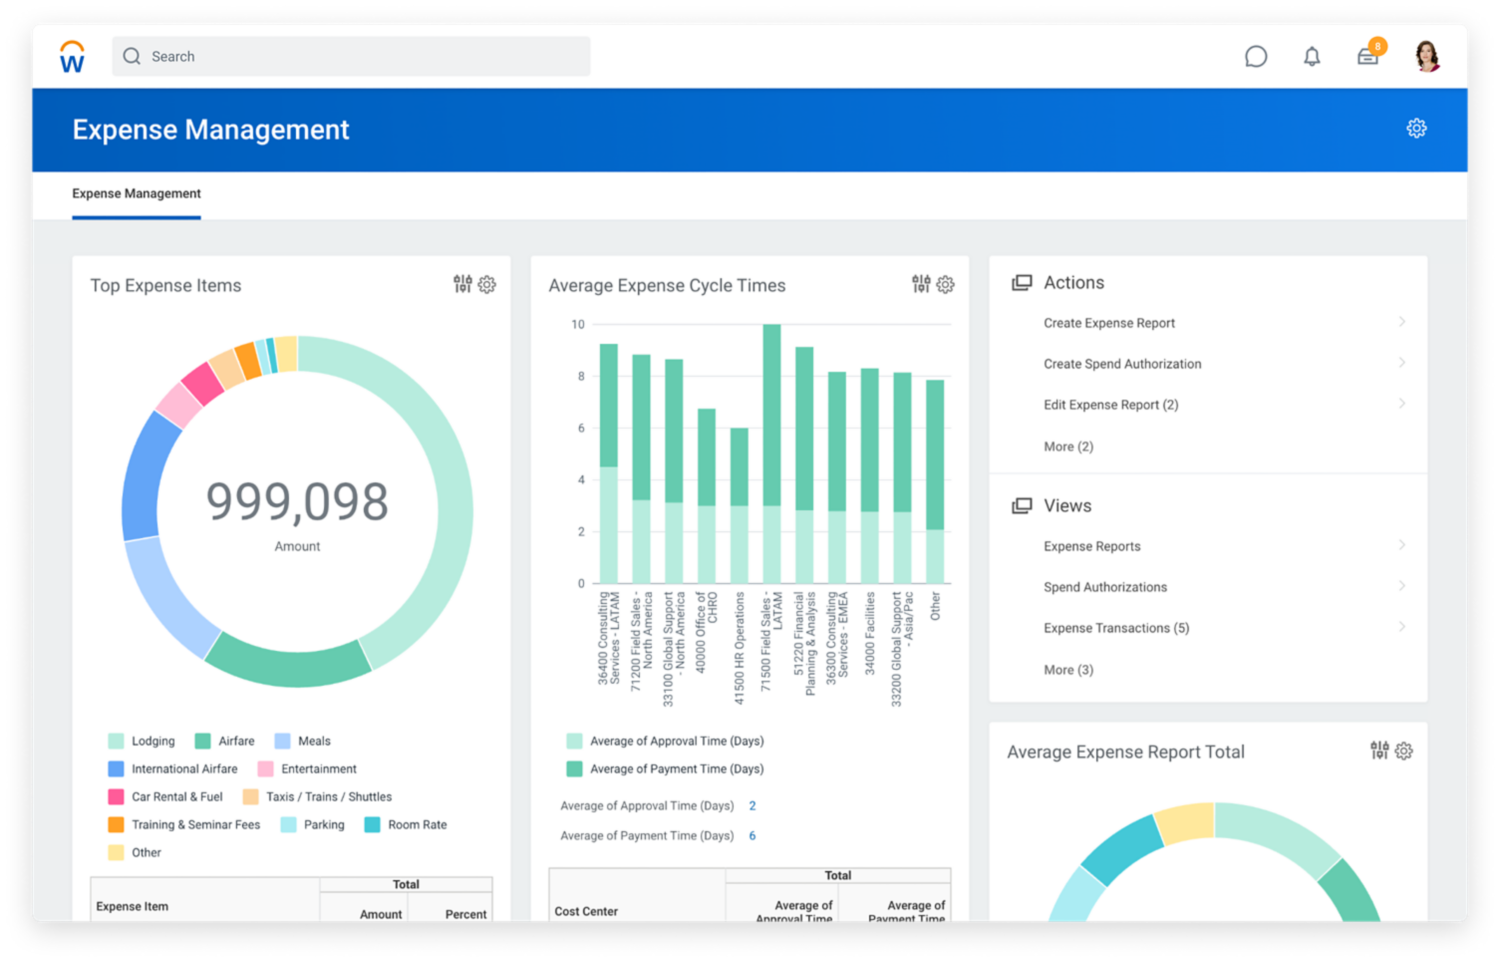 Expense management dashboard showing graphs for top expense item and average expense cycle times.